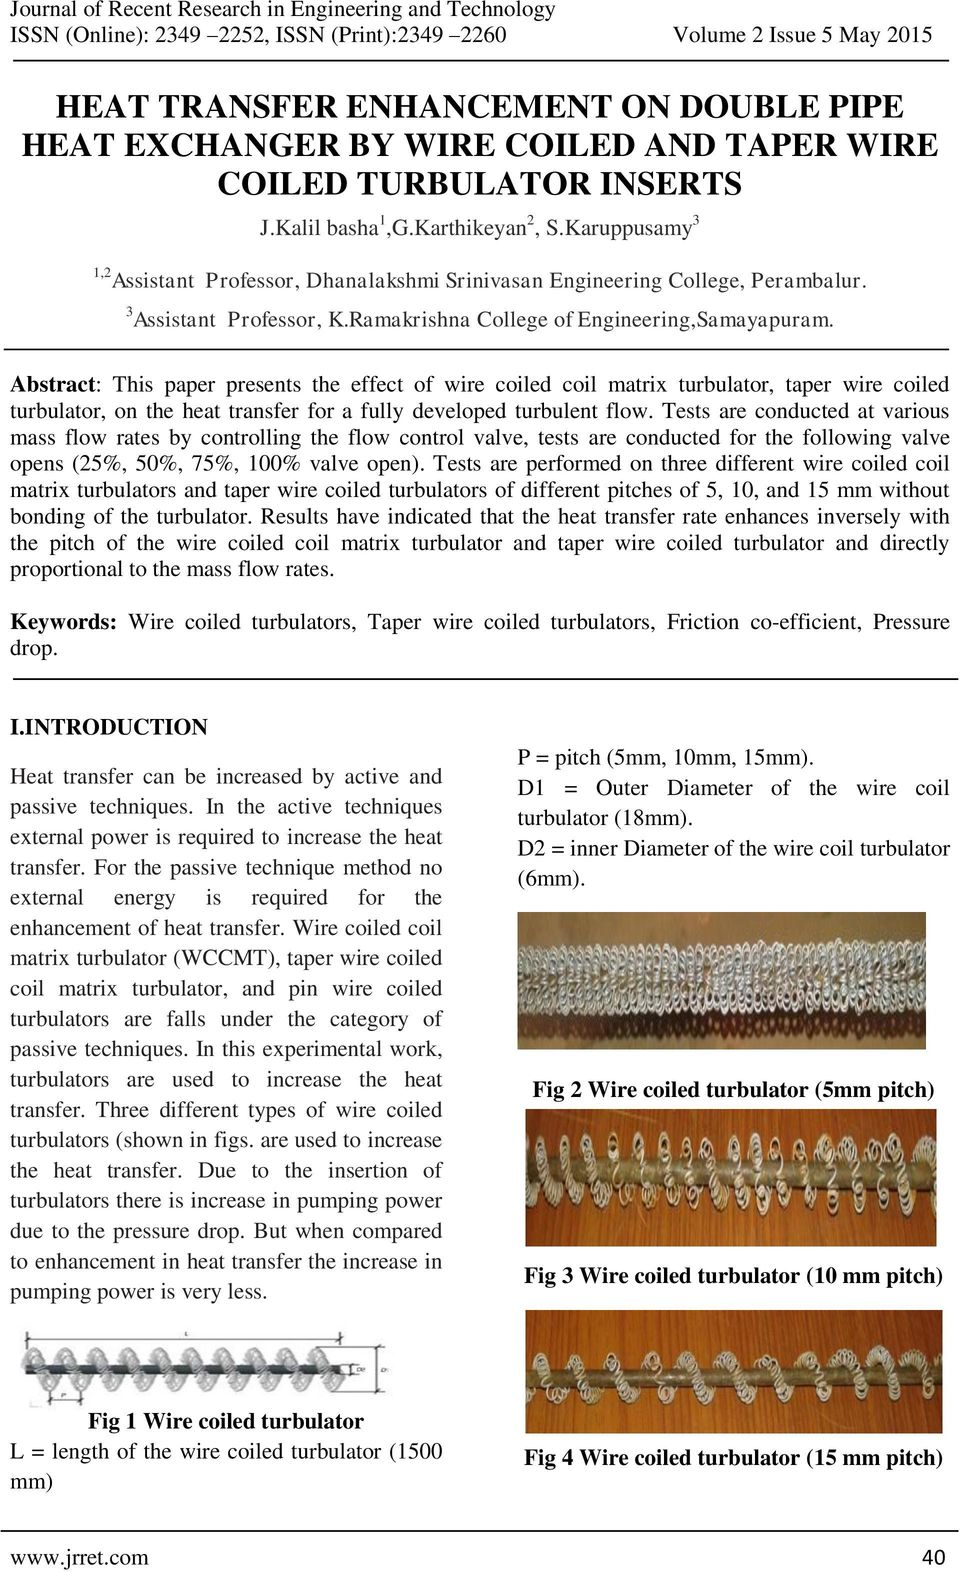 Abstract: This paper presents the effect of wire coiled coil matrix turbulator, taper wire coiled turbulator, on the heat transfer for a fully developed turbulent flow.